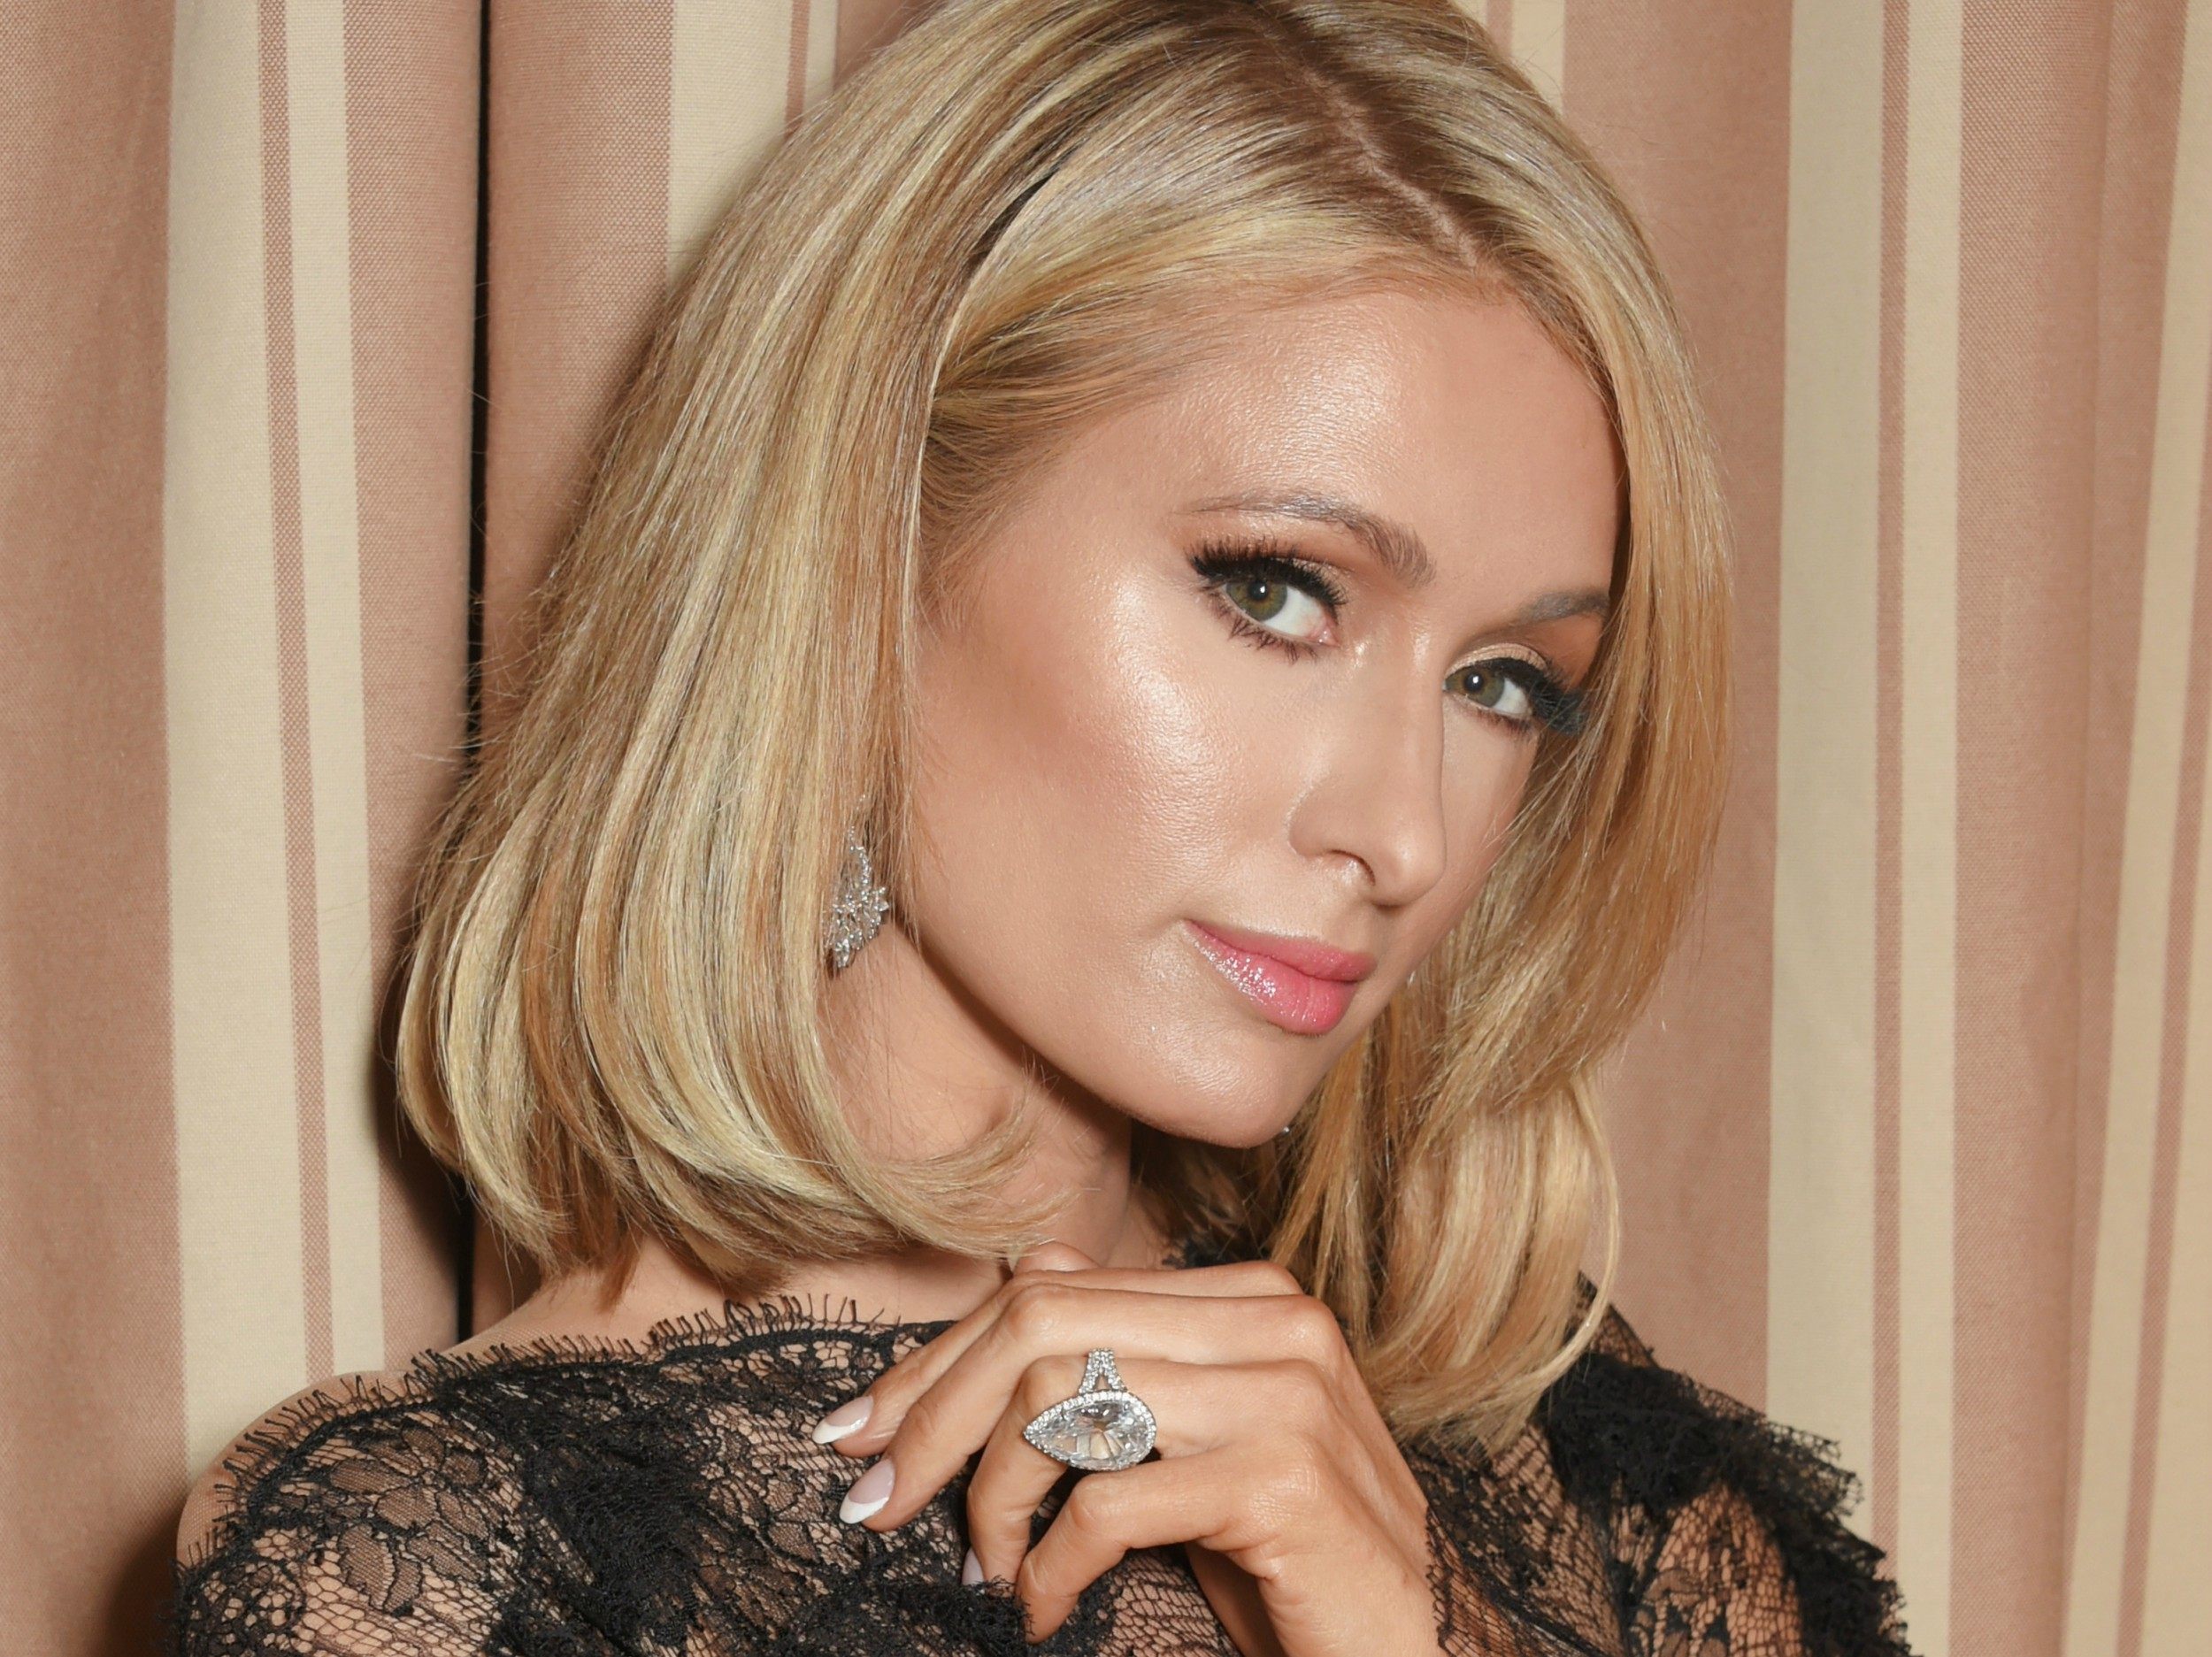 Paris Hilton briefly loses engagement ring at club